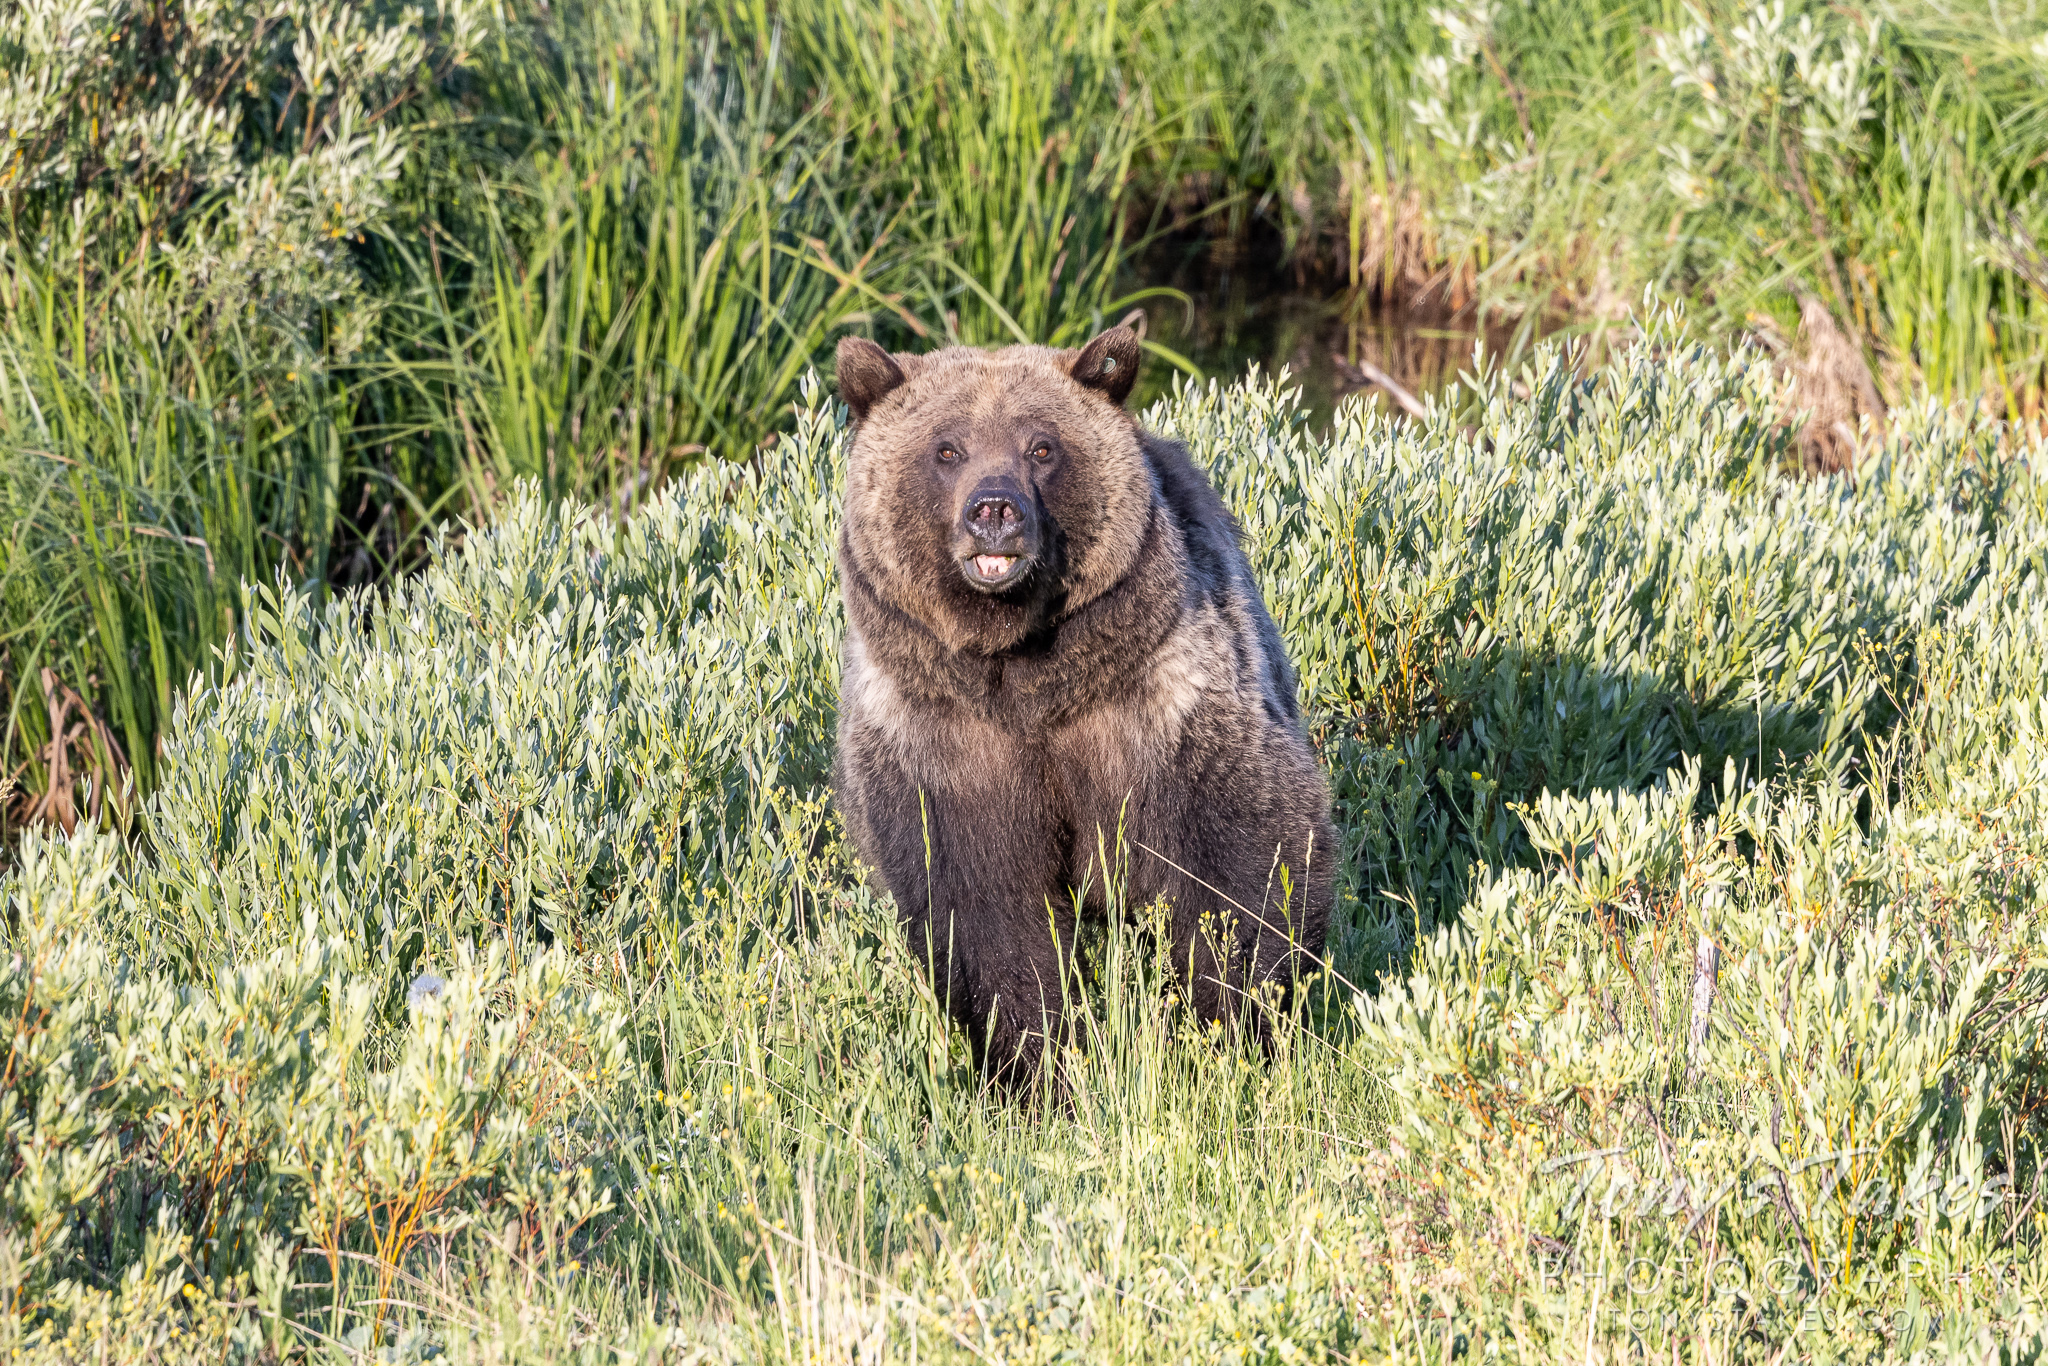 Mama grizzly head on